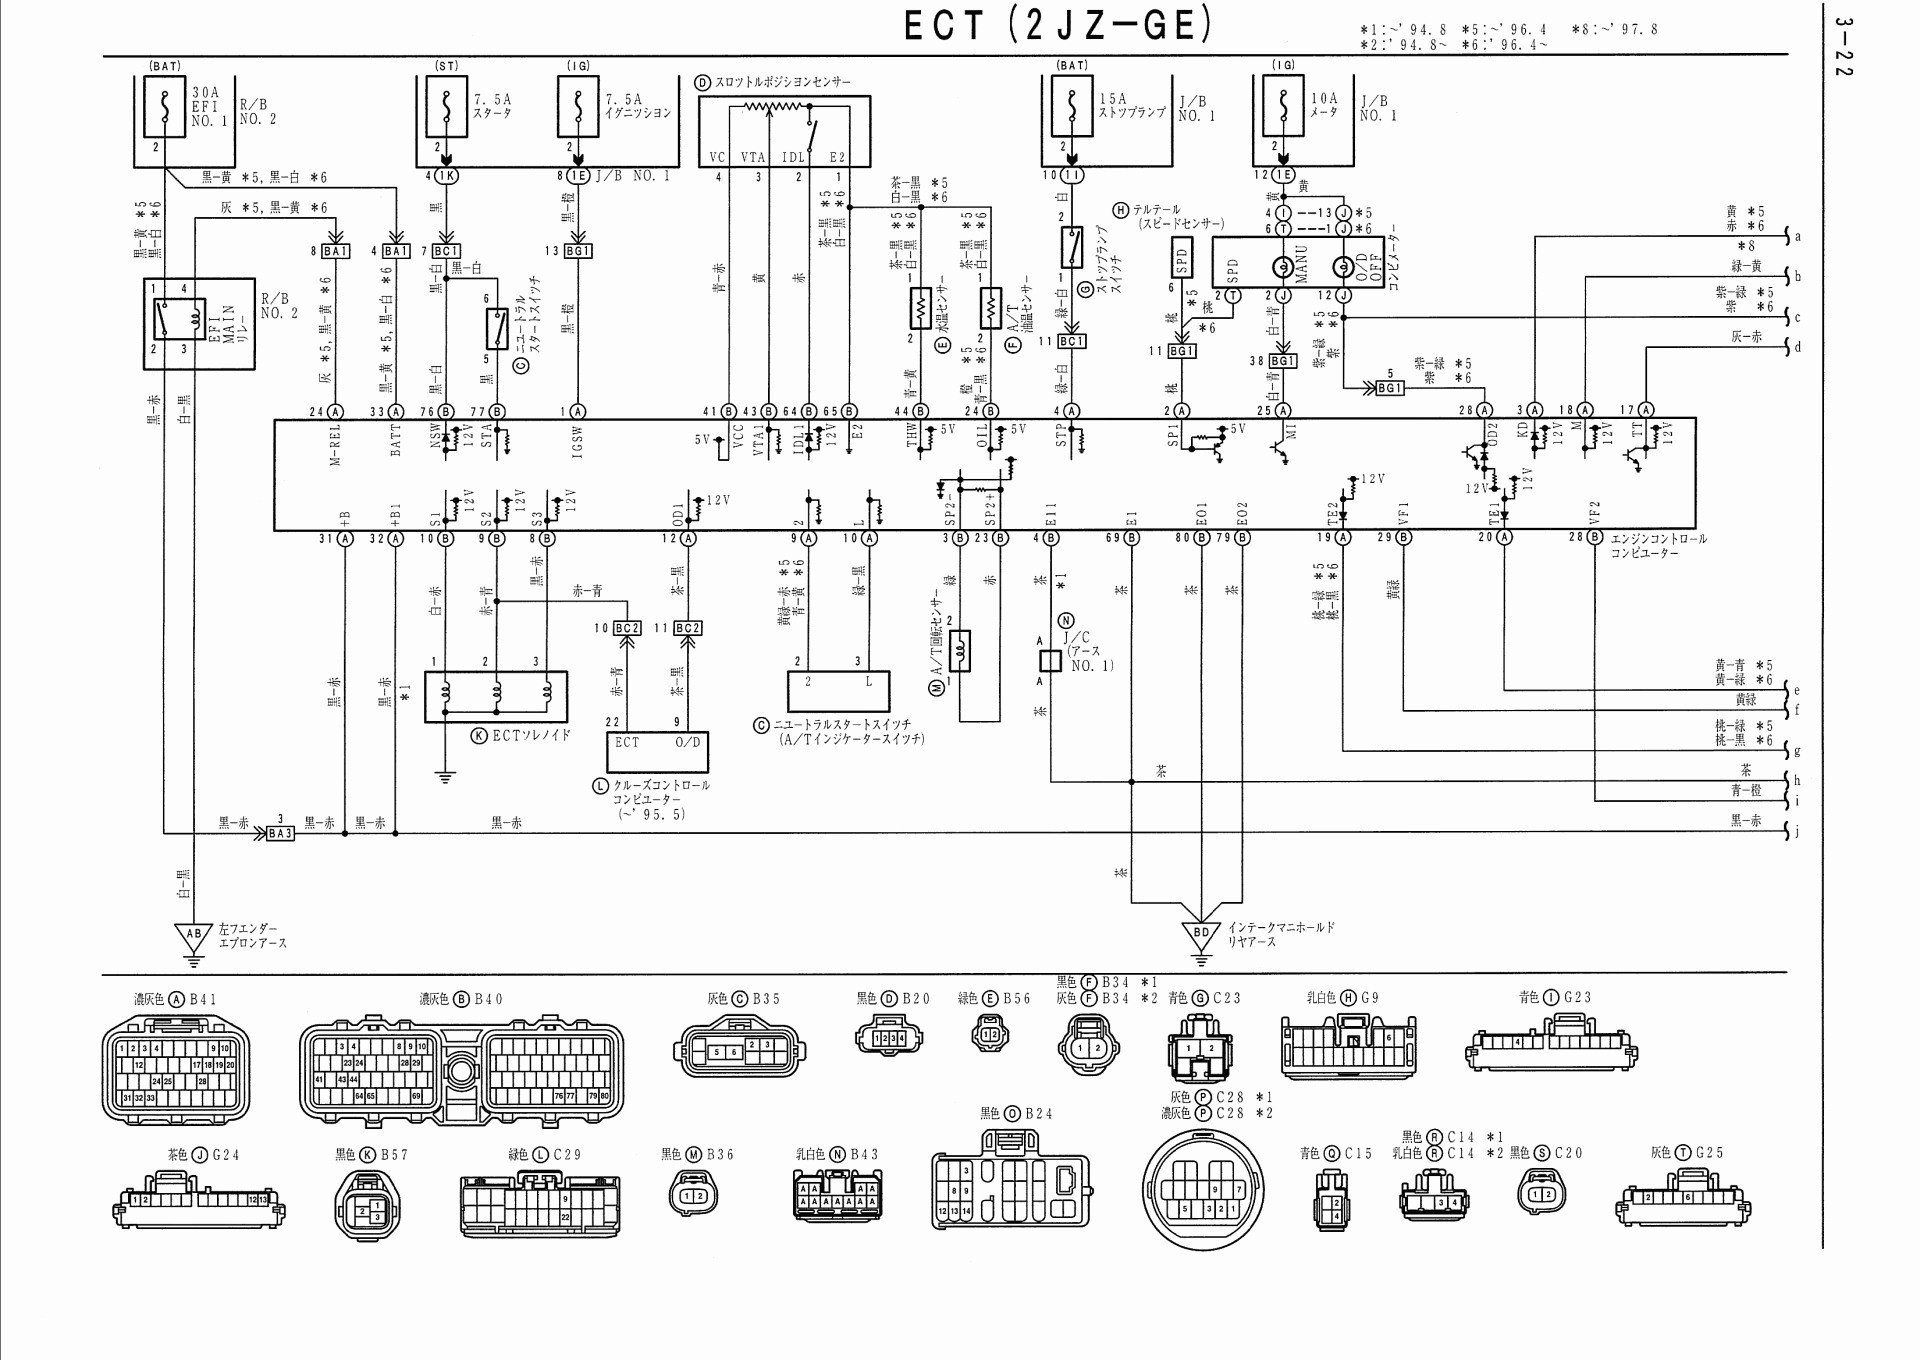 Bmw 6 Cylinder Engine Diagram - Wiring Diagram Schematics Six Cylinder Engine Diagram on